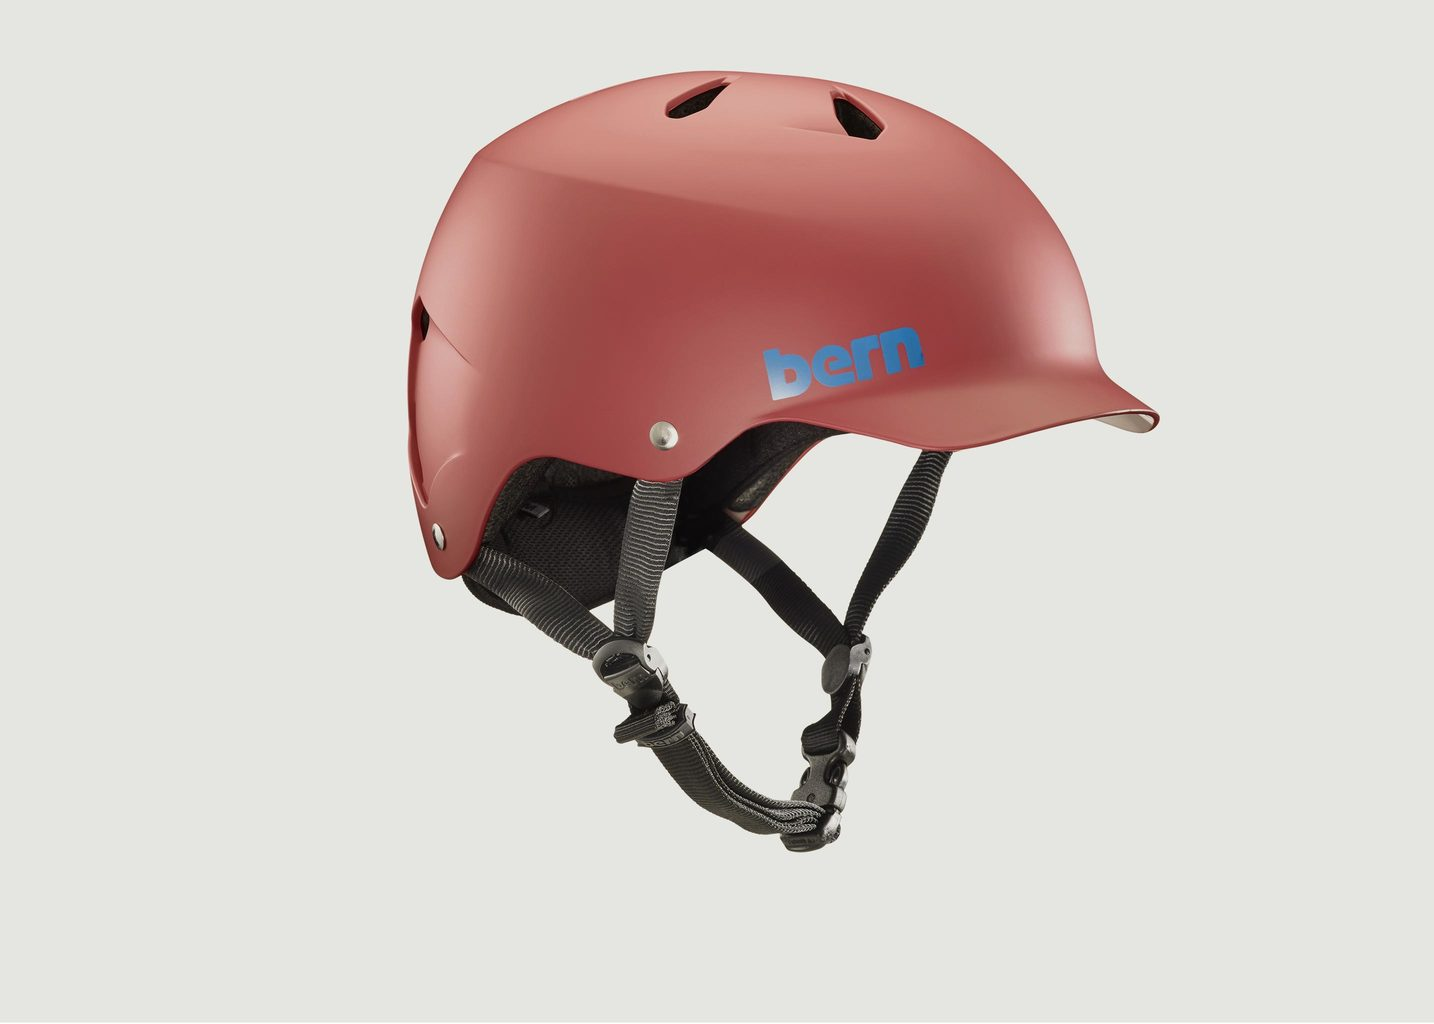 Casque de Vélo Watts EPS Matte Red - Bern